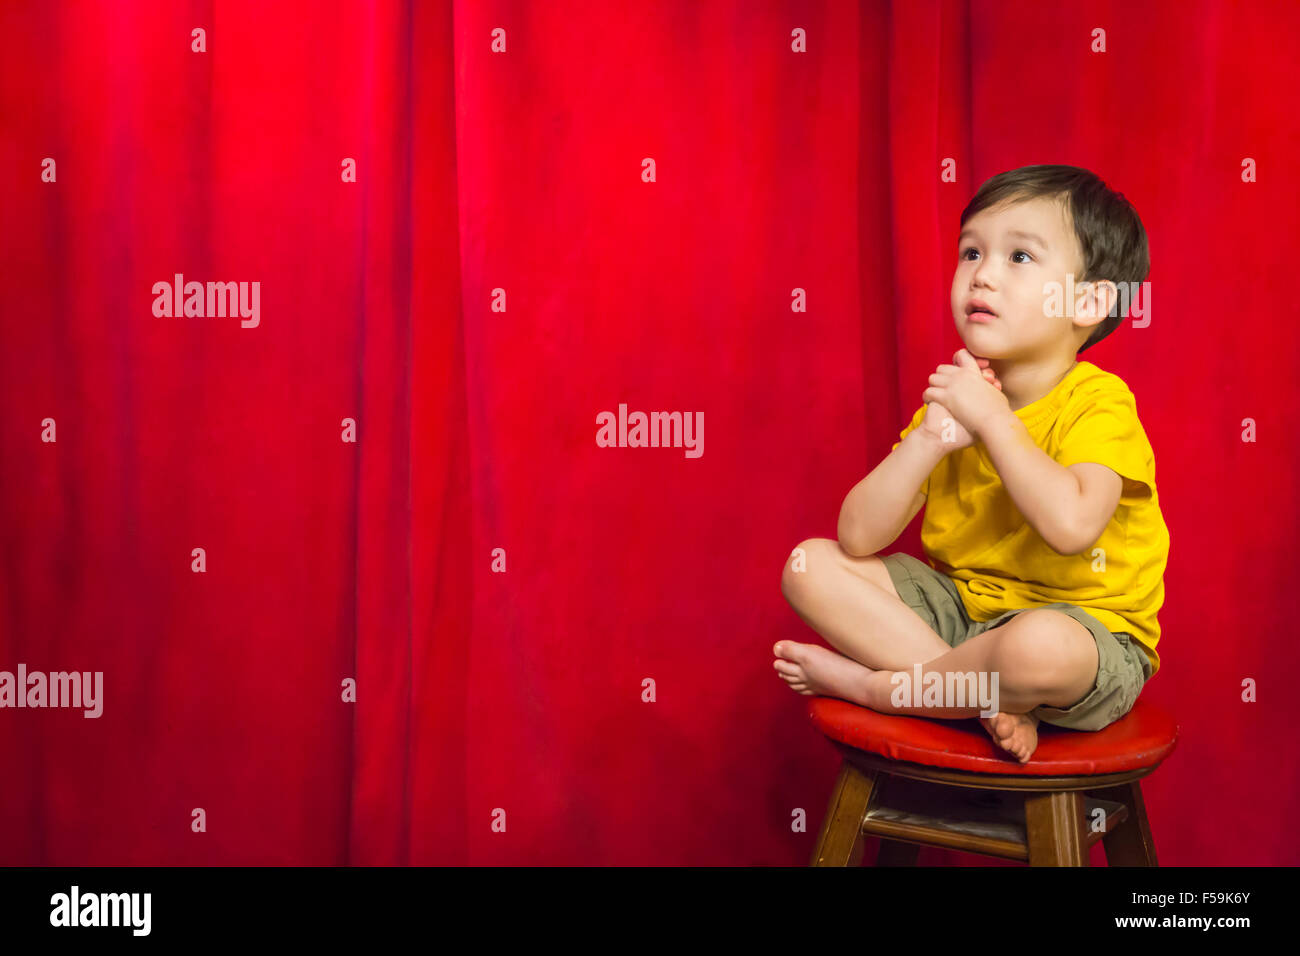 Handsome Mixed Race Boy Sitting on Stool in Front of Red Curtain. - Stock Image